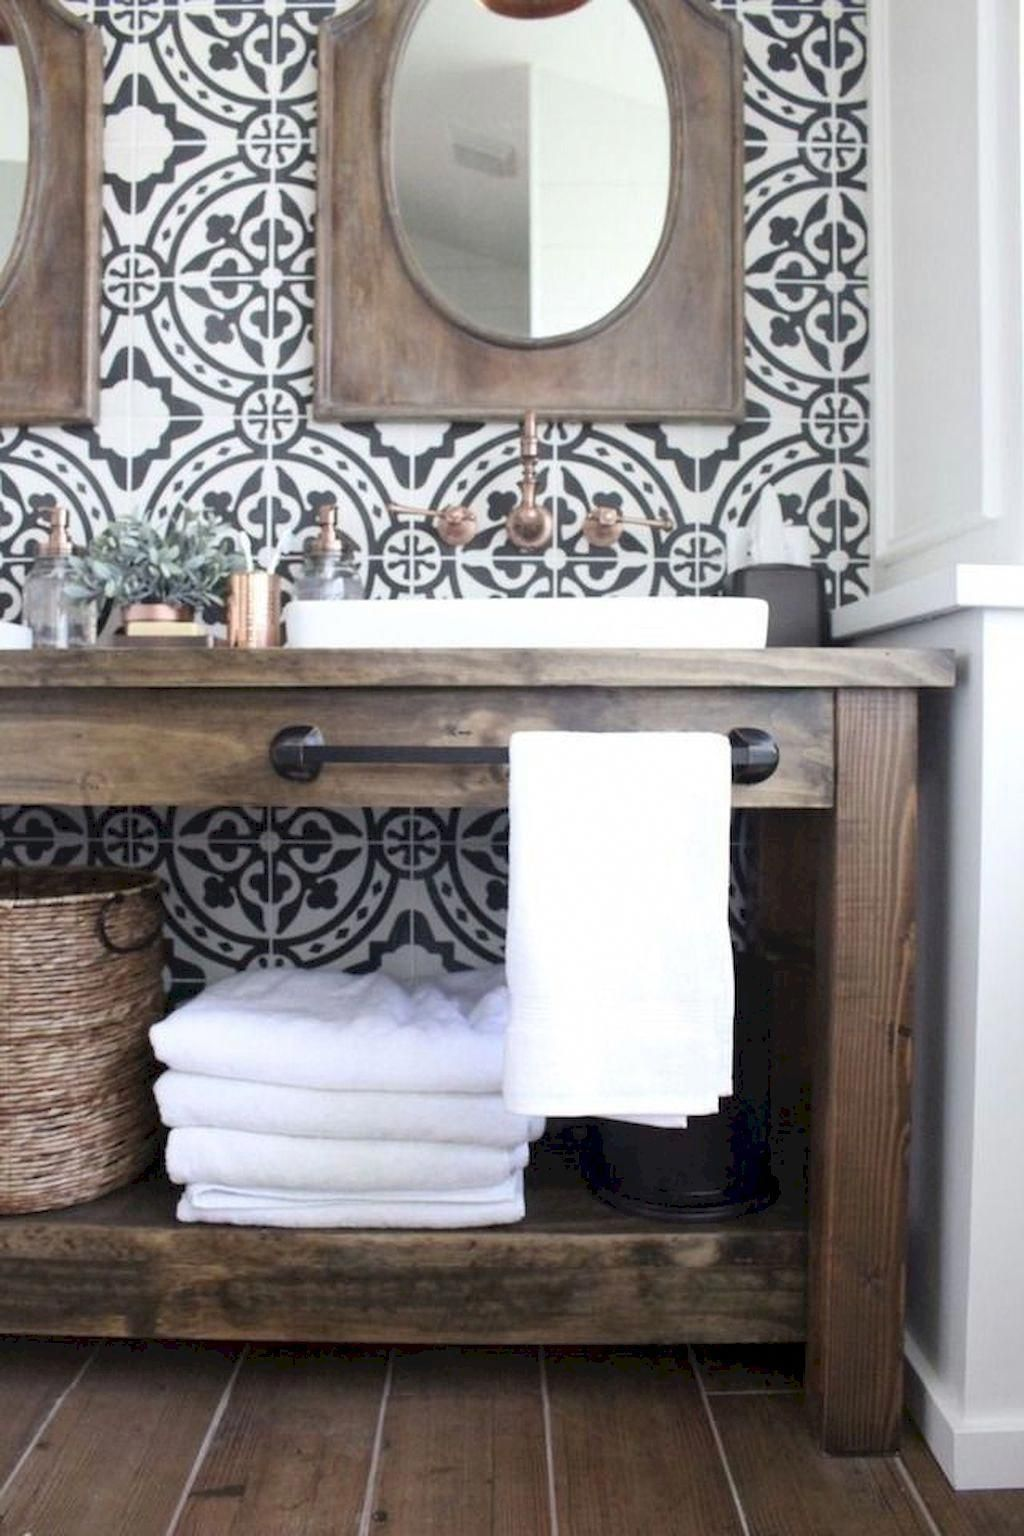 To Make Your Restroom Feel Less Little And Messy Designers Recommend Missing On Heavily